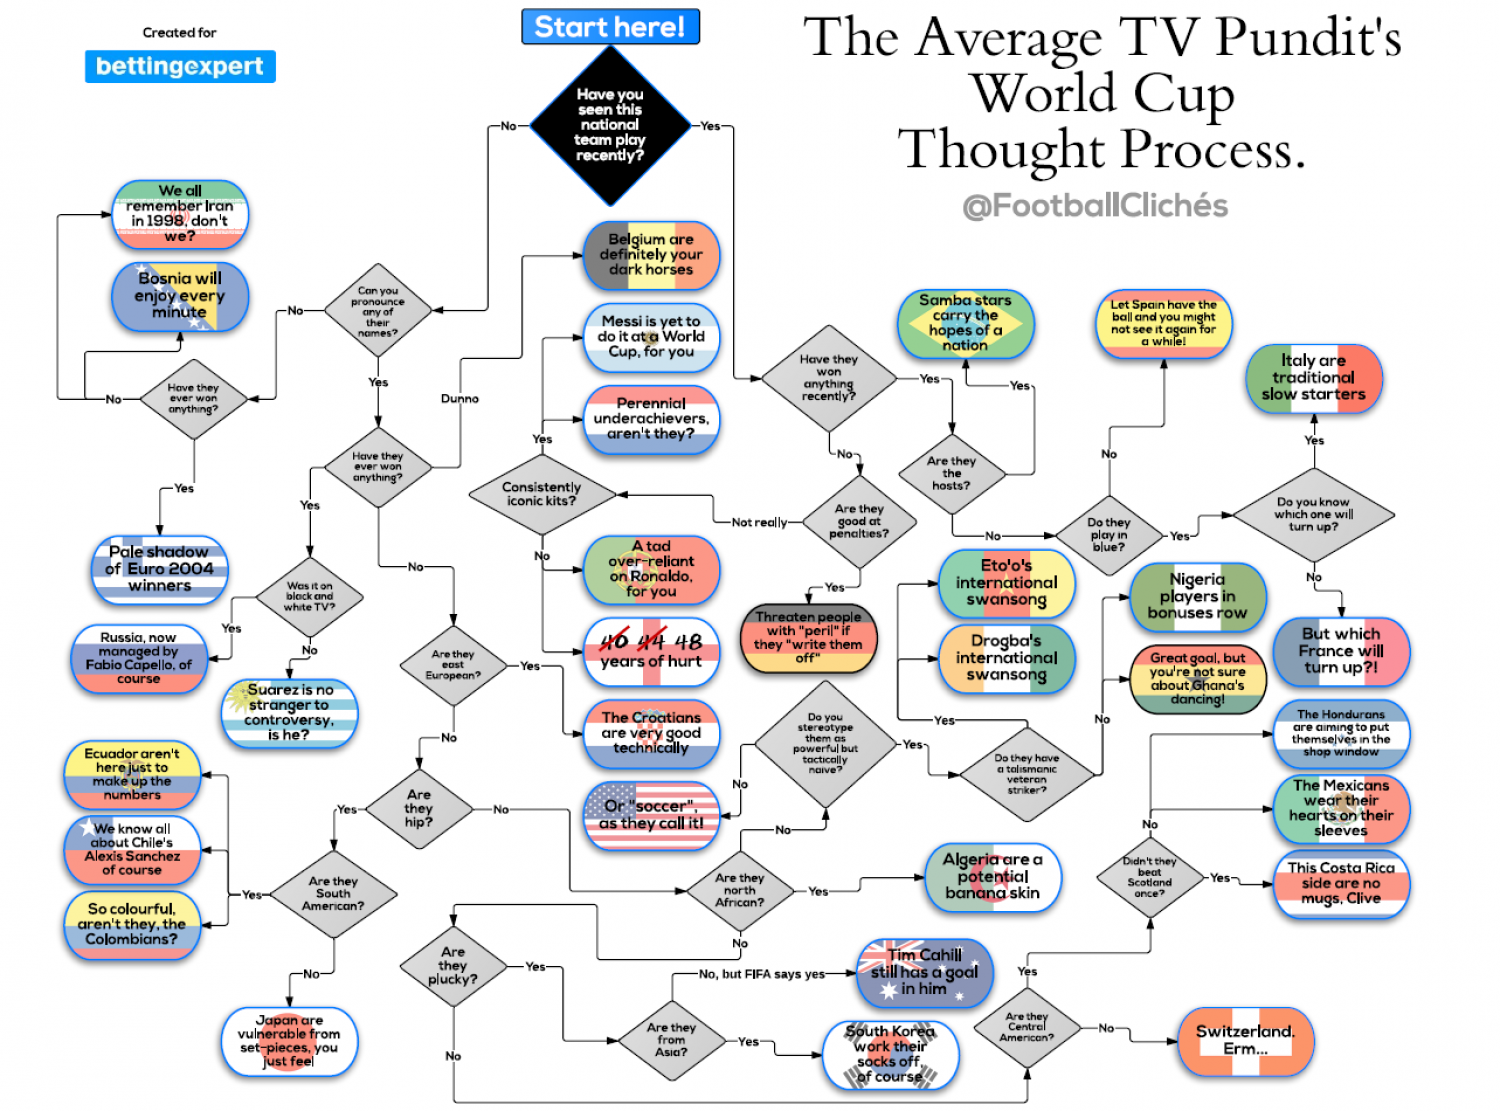 The Average TV Pundit's World Cup Thought Process Flowchart Infographic